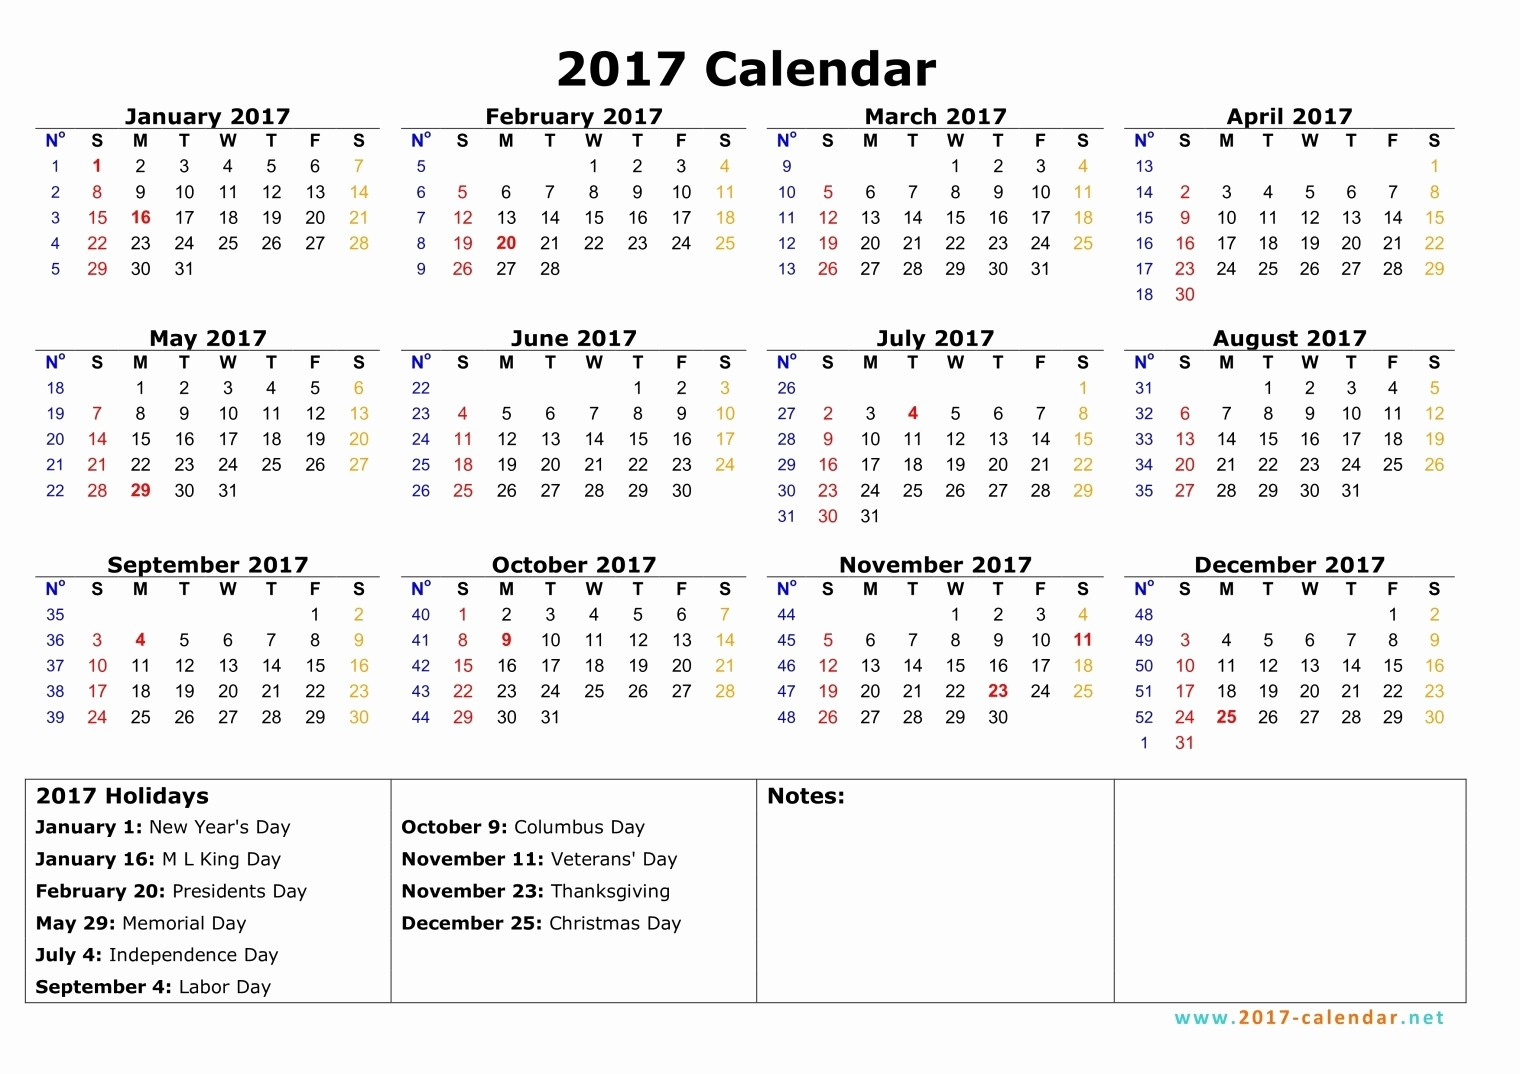 Free Downloadable 2016 Calendar Template Luxury Free Printable 2016 Calendar with Holidays